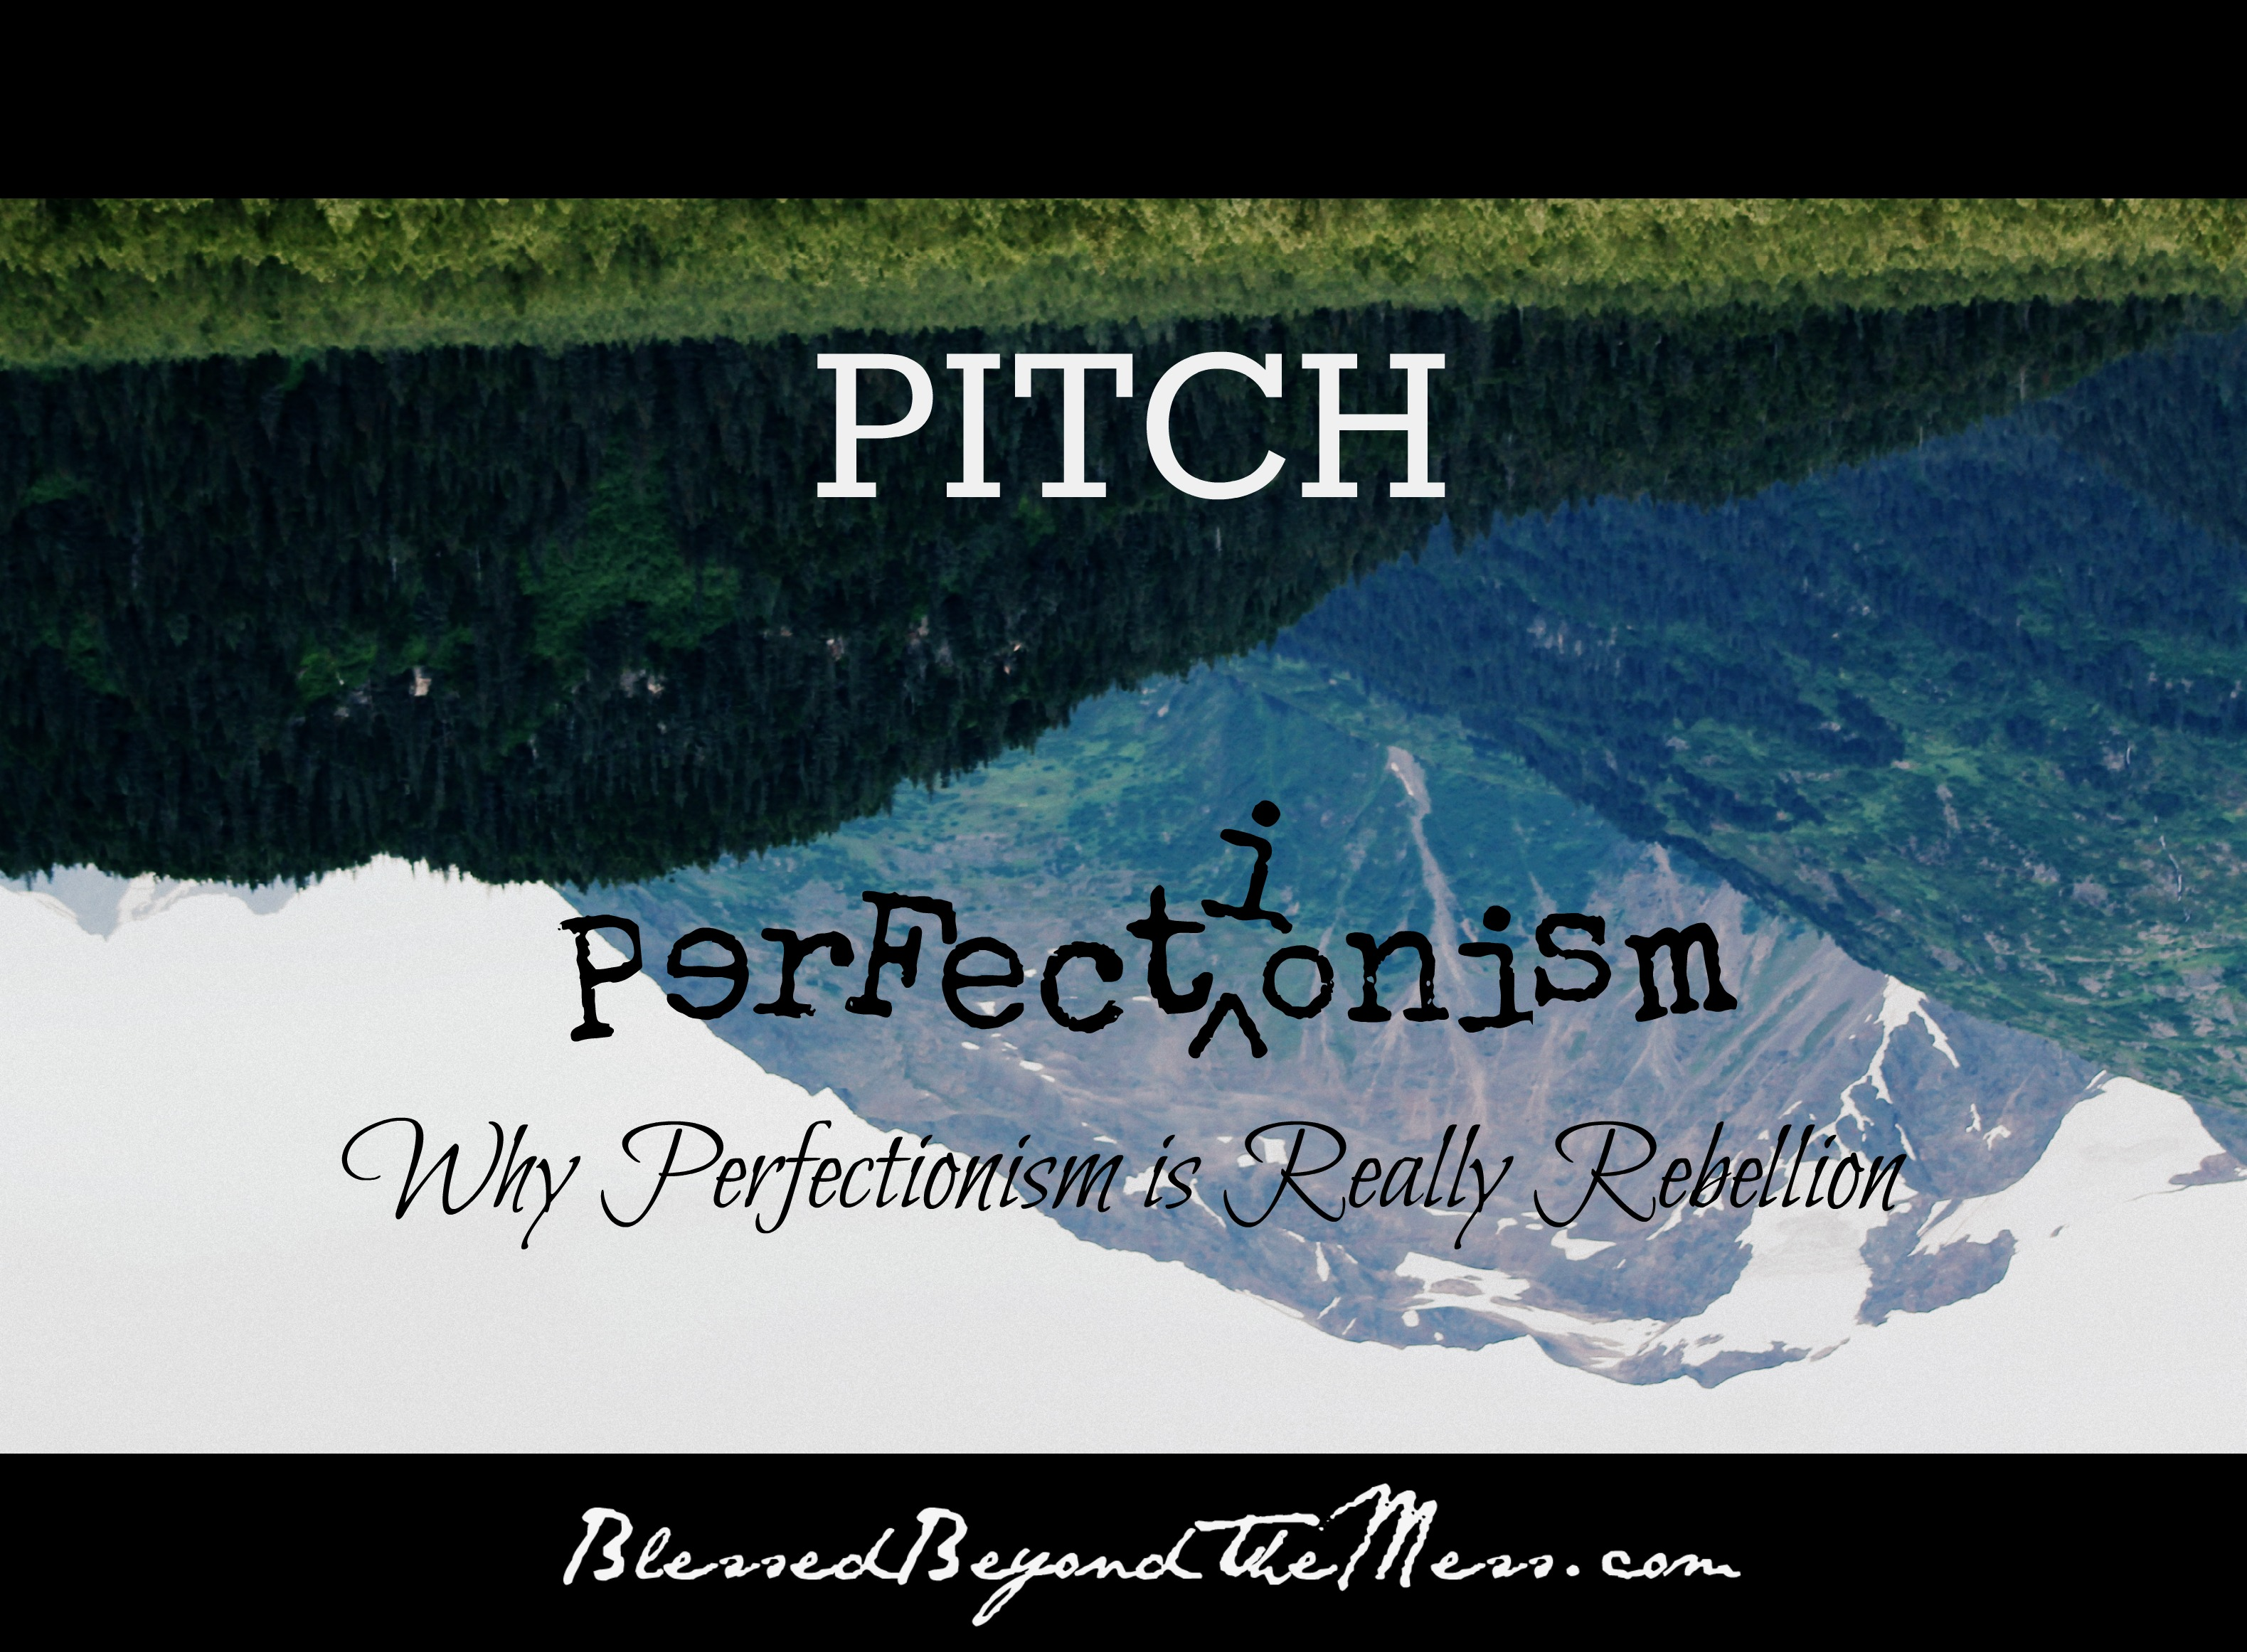 Pitch Perfectionism